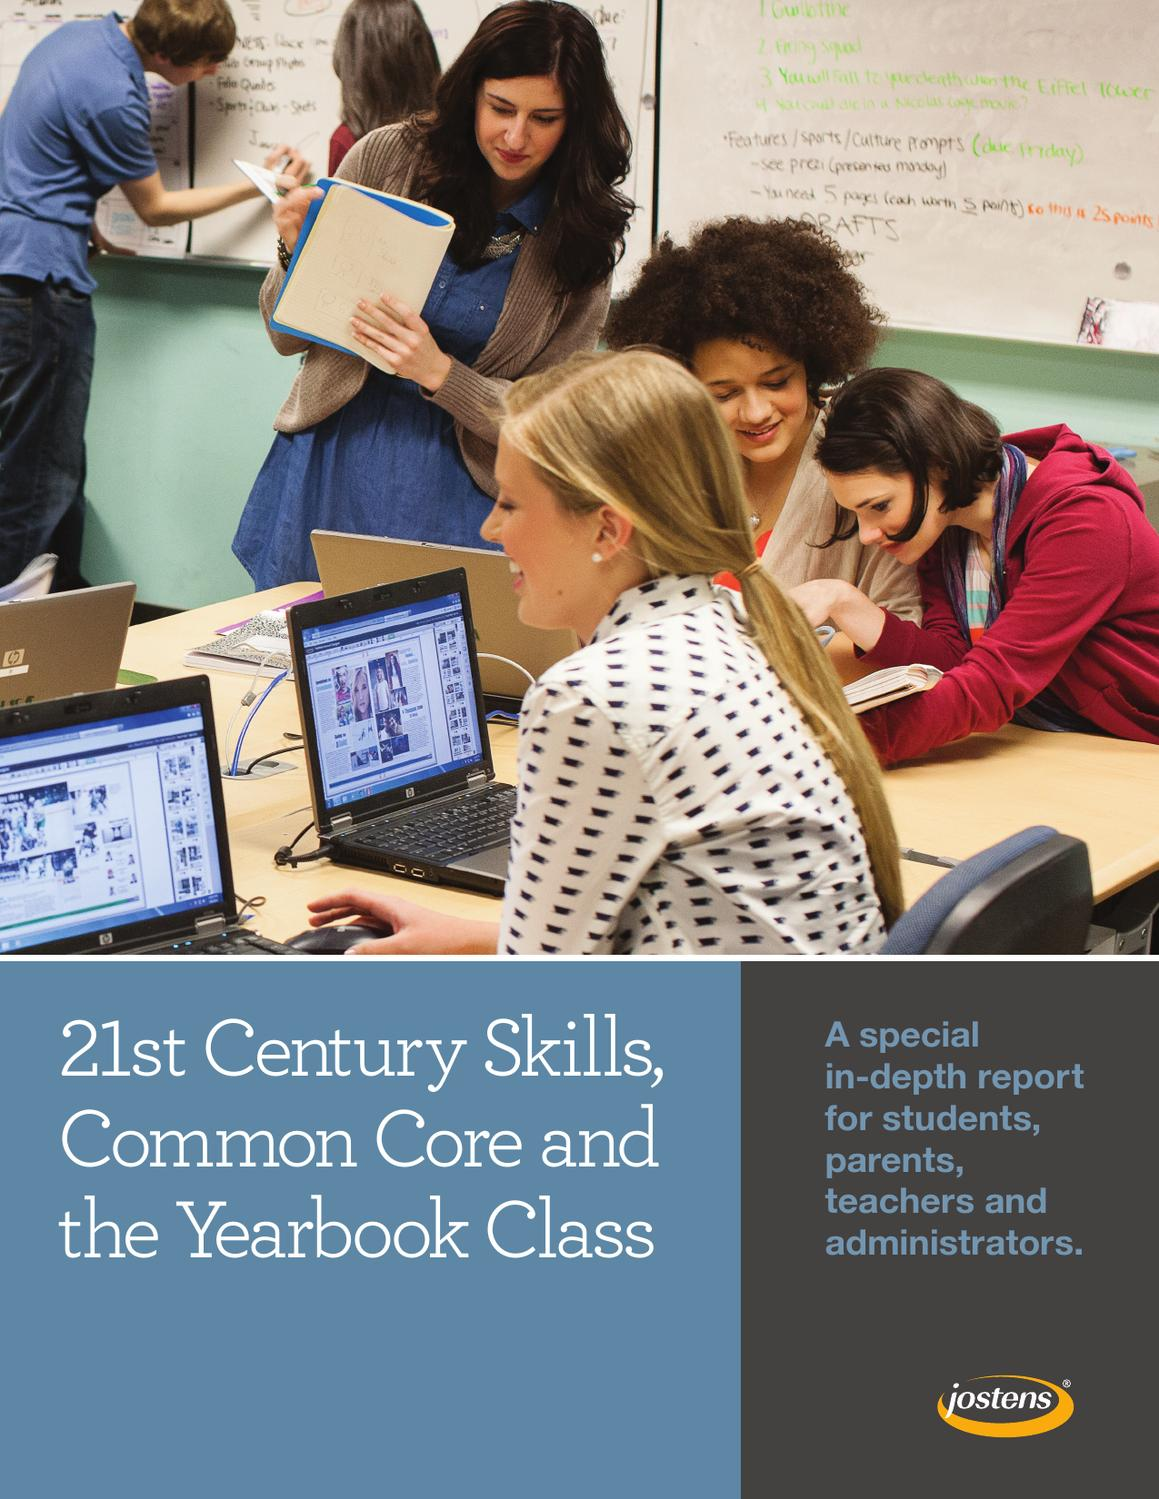 21st Century Skills, Common Core and the Yearbook Class by Jostens Yearbook  - issuu